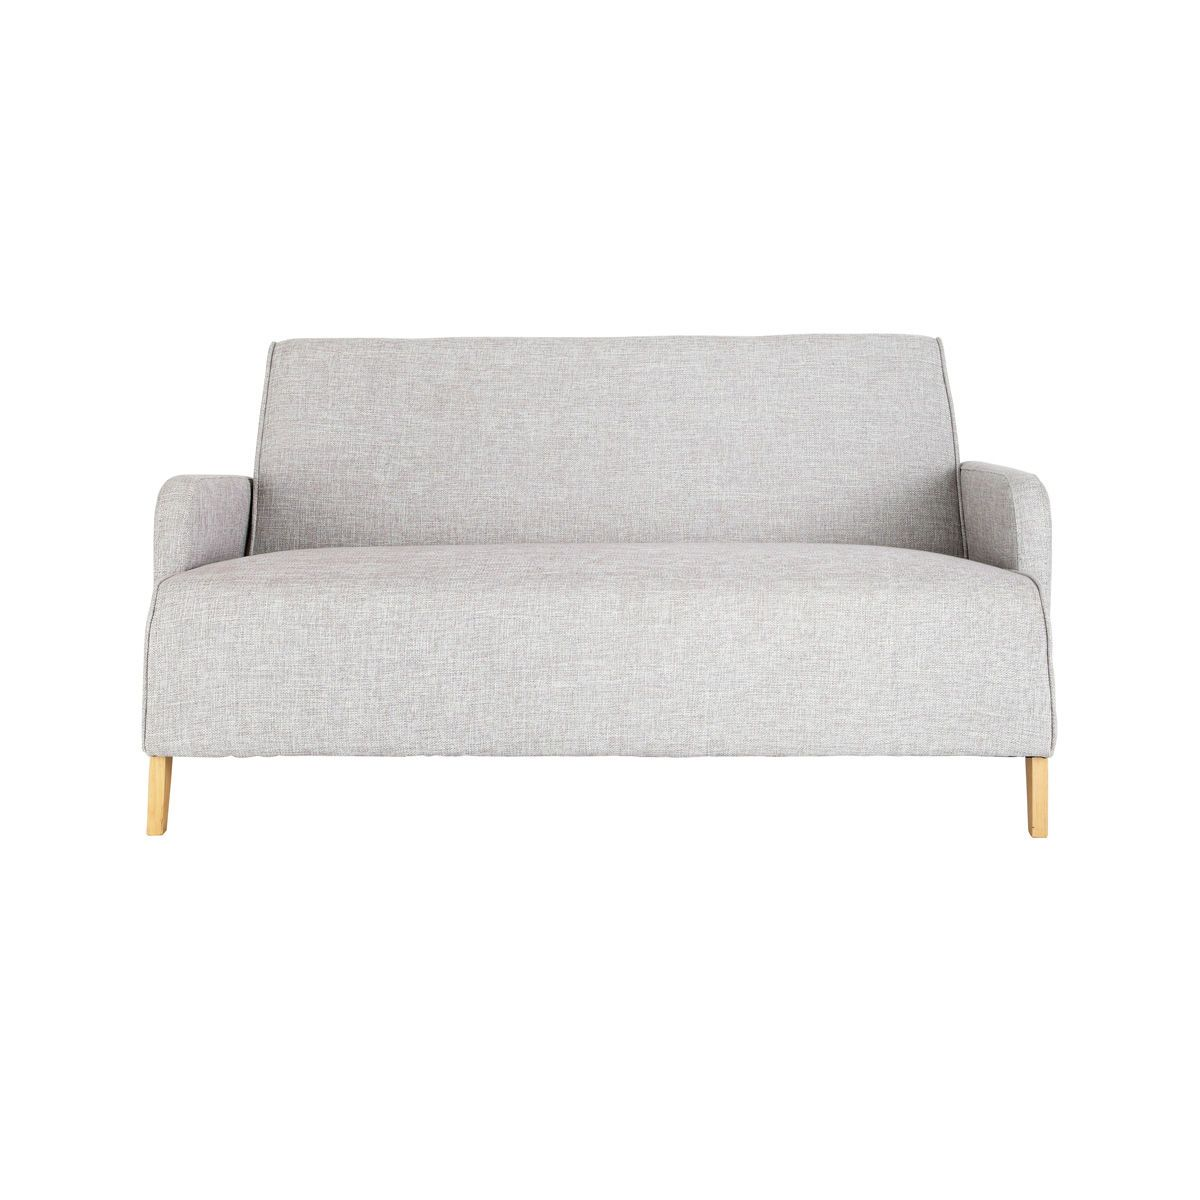 Grijze Stoffen 2 Zetel Maisons Du Monde Sofas For Small Spaces Fabric Sofa Light Gray Sofas